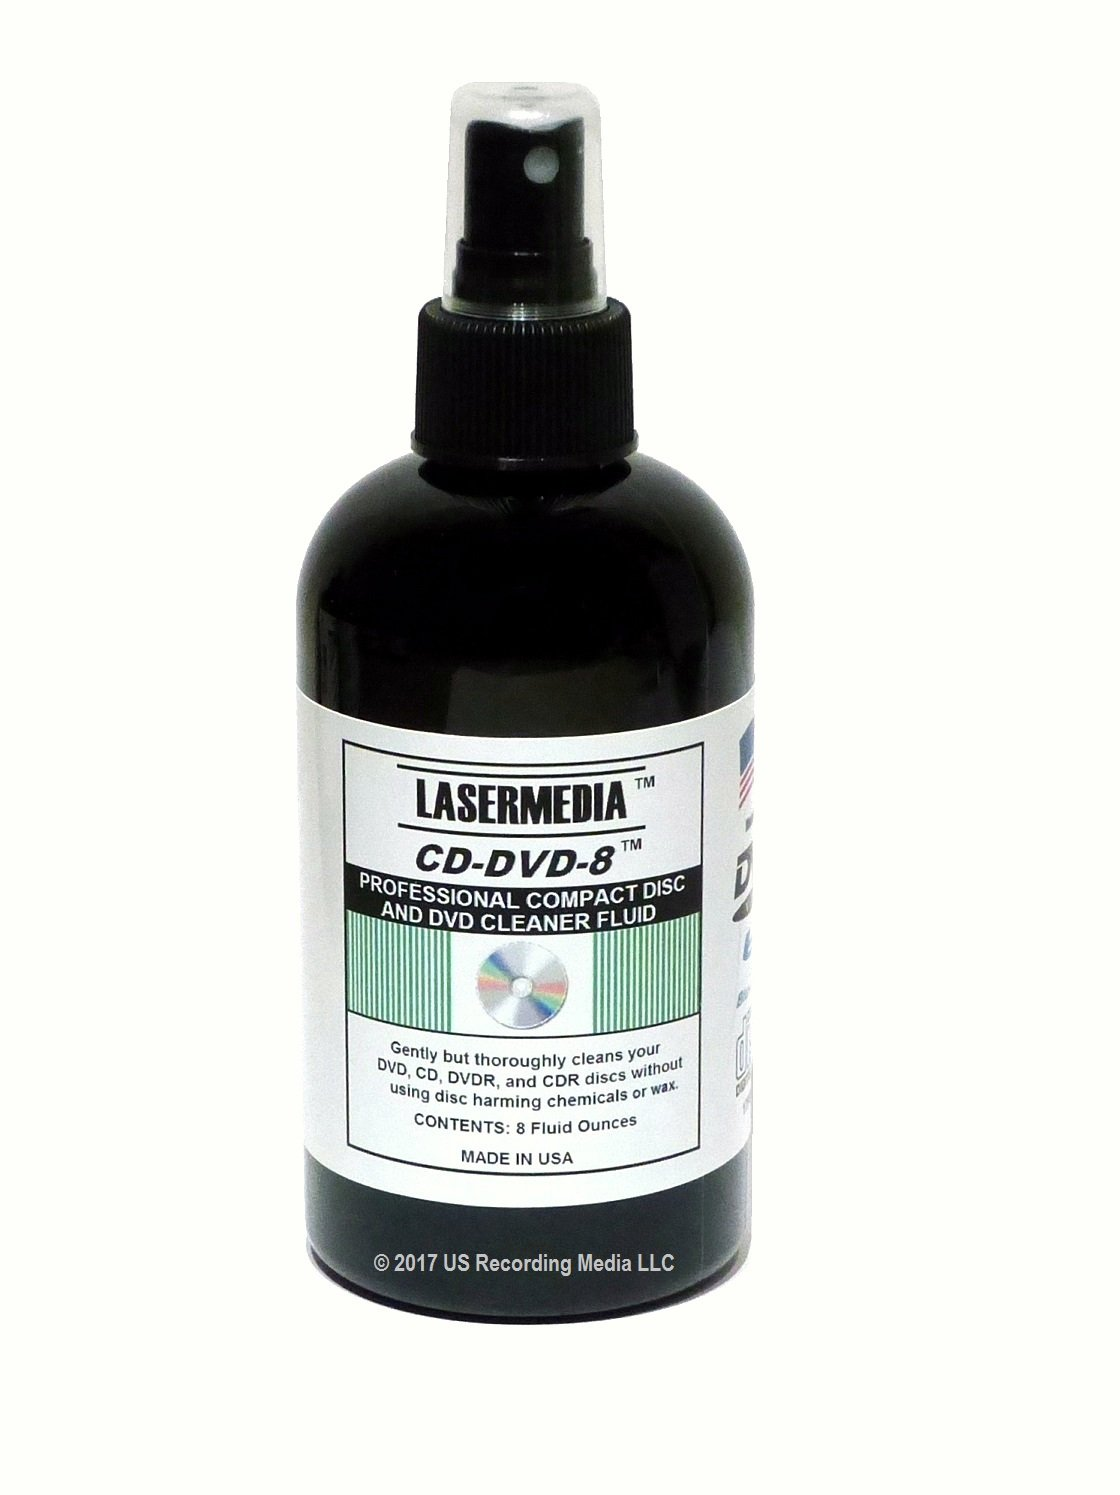 TME Lasermedia CD-DVD-8 Compact Disc/CDR and DVD-DVD-R Cleaner 8 Ounce Spray Bottle by TME